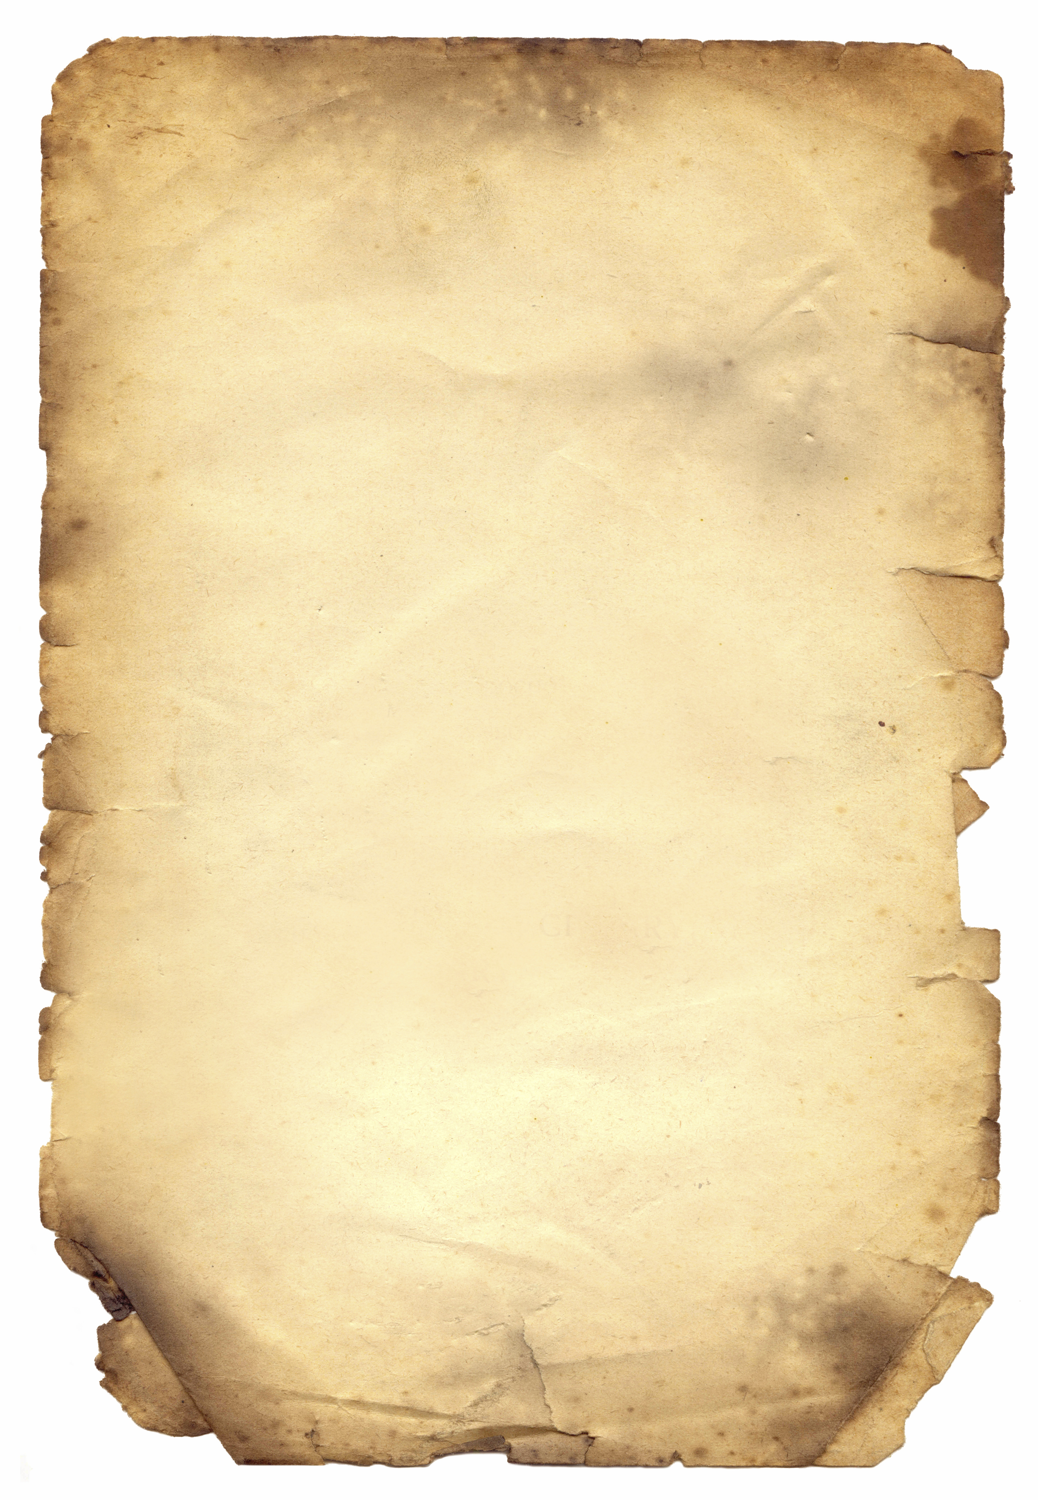 Burned paper clipart clipart Free Burnt Paper Cliparts, Download Free Clip Art, Free Clip Art on ... clipart